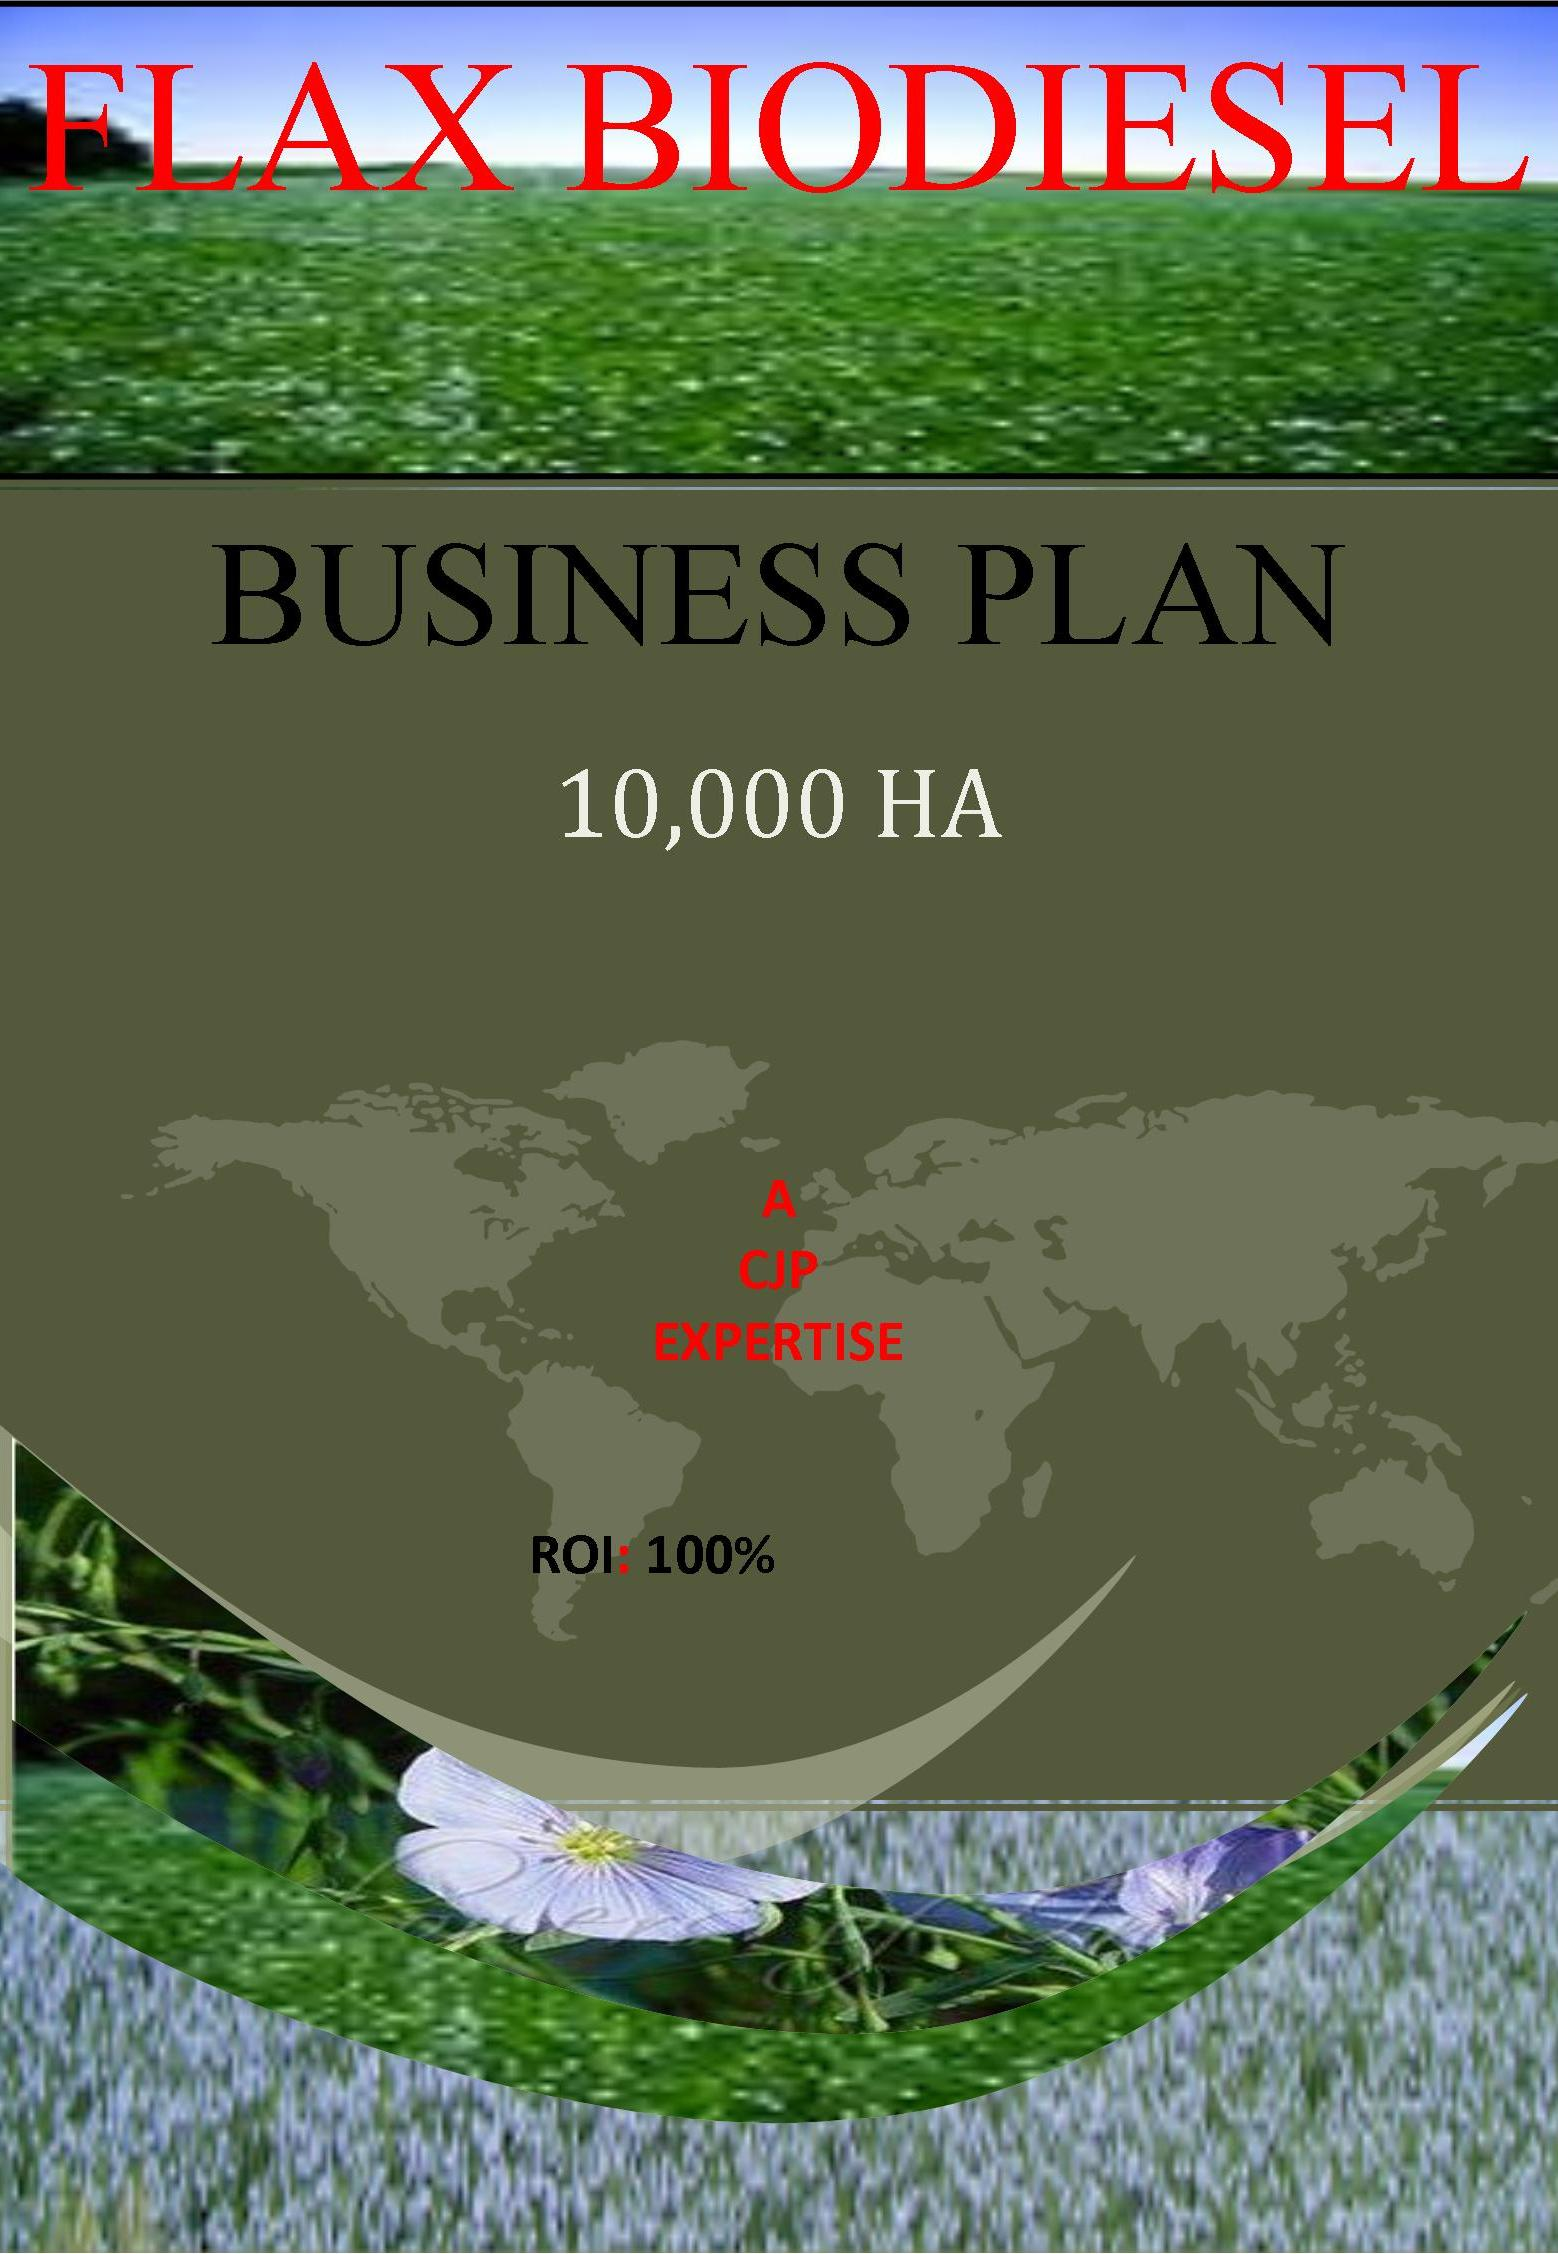 flax biodiesel business plan